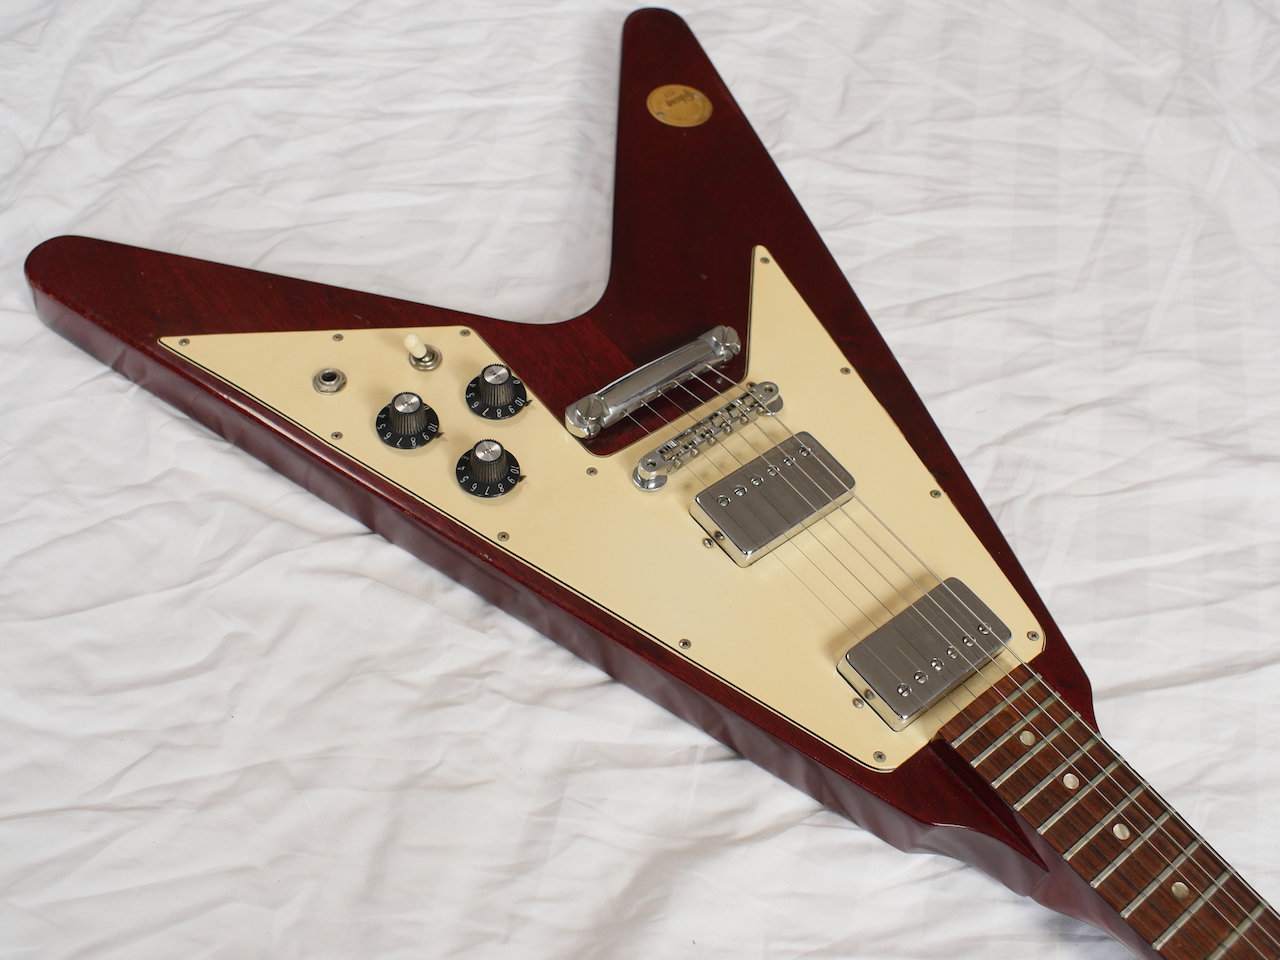 gibson flying v medallion series 1971 cherry red guitar for sale atoyboy guitars. Black Bedroom Furniture Sets. Home Design Ideas